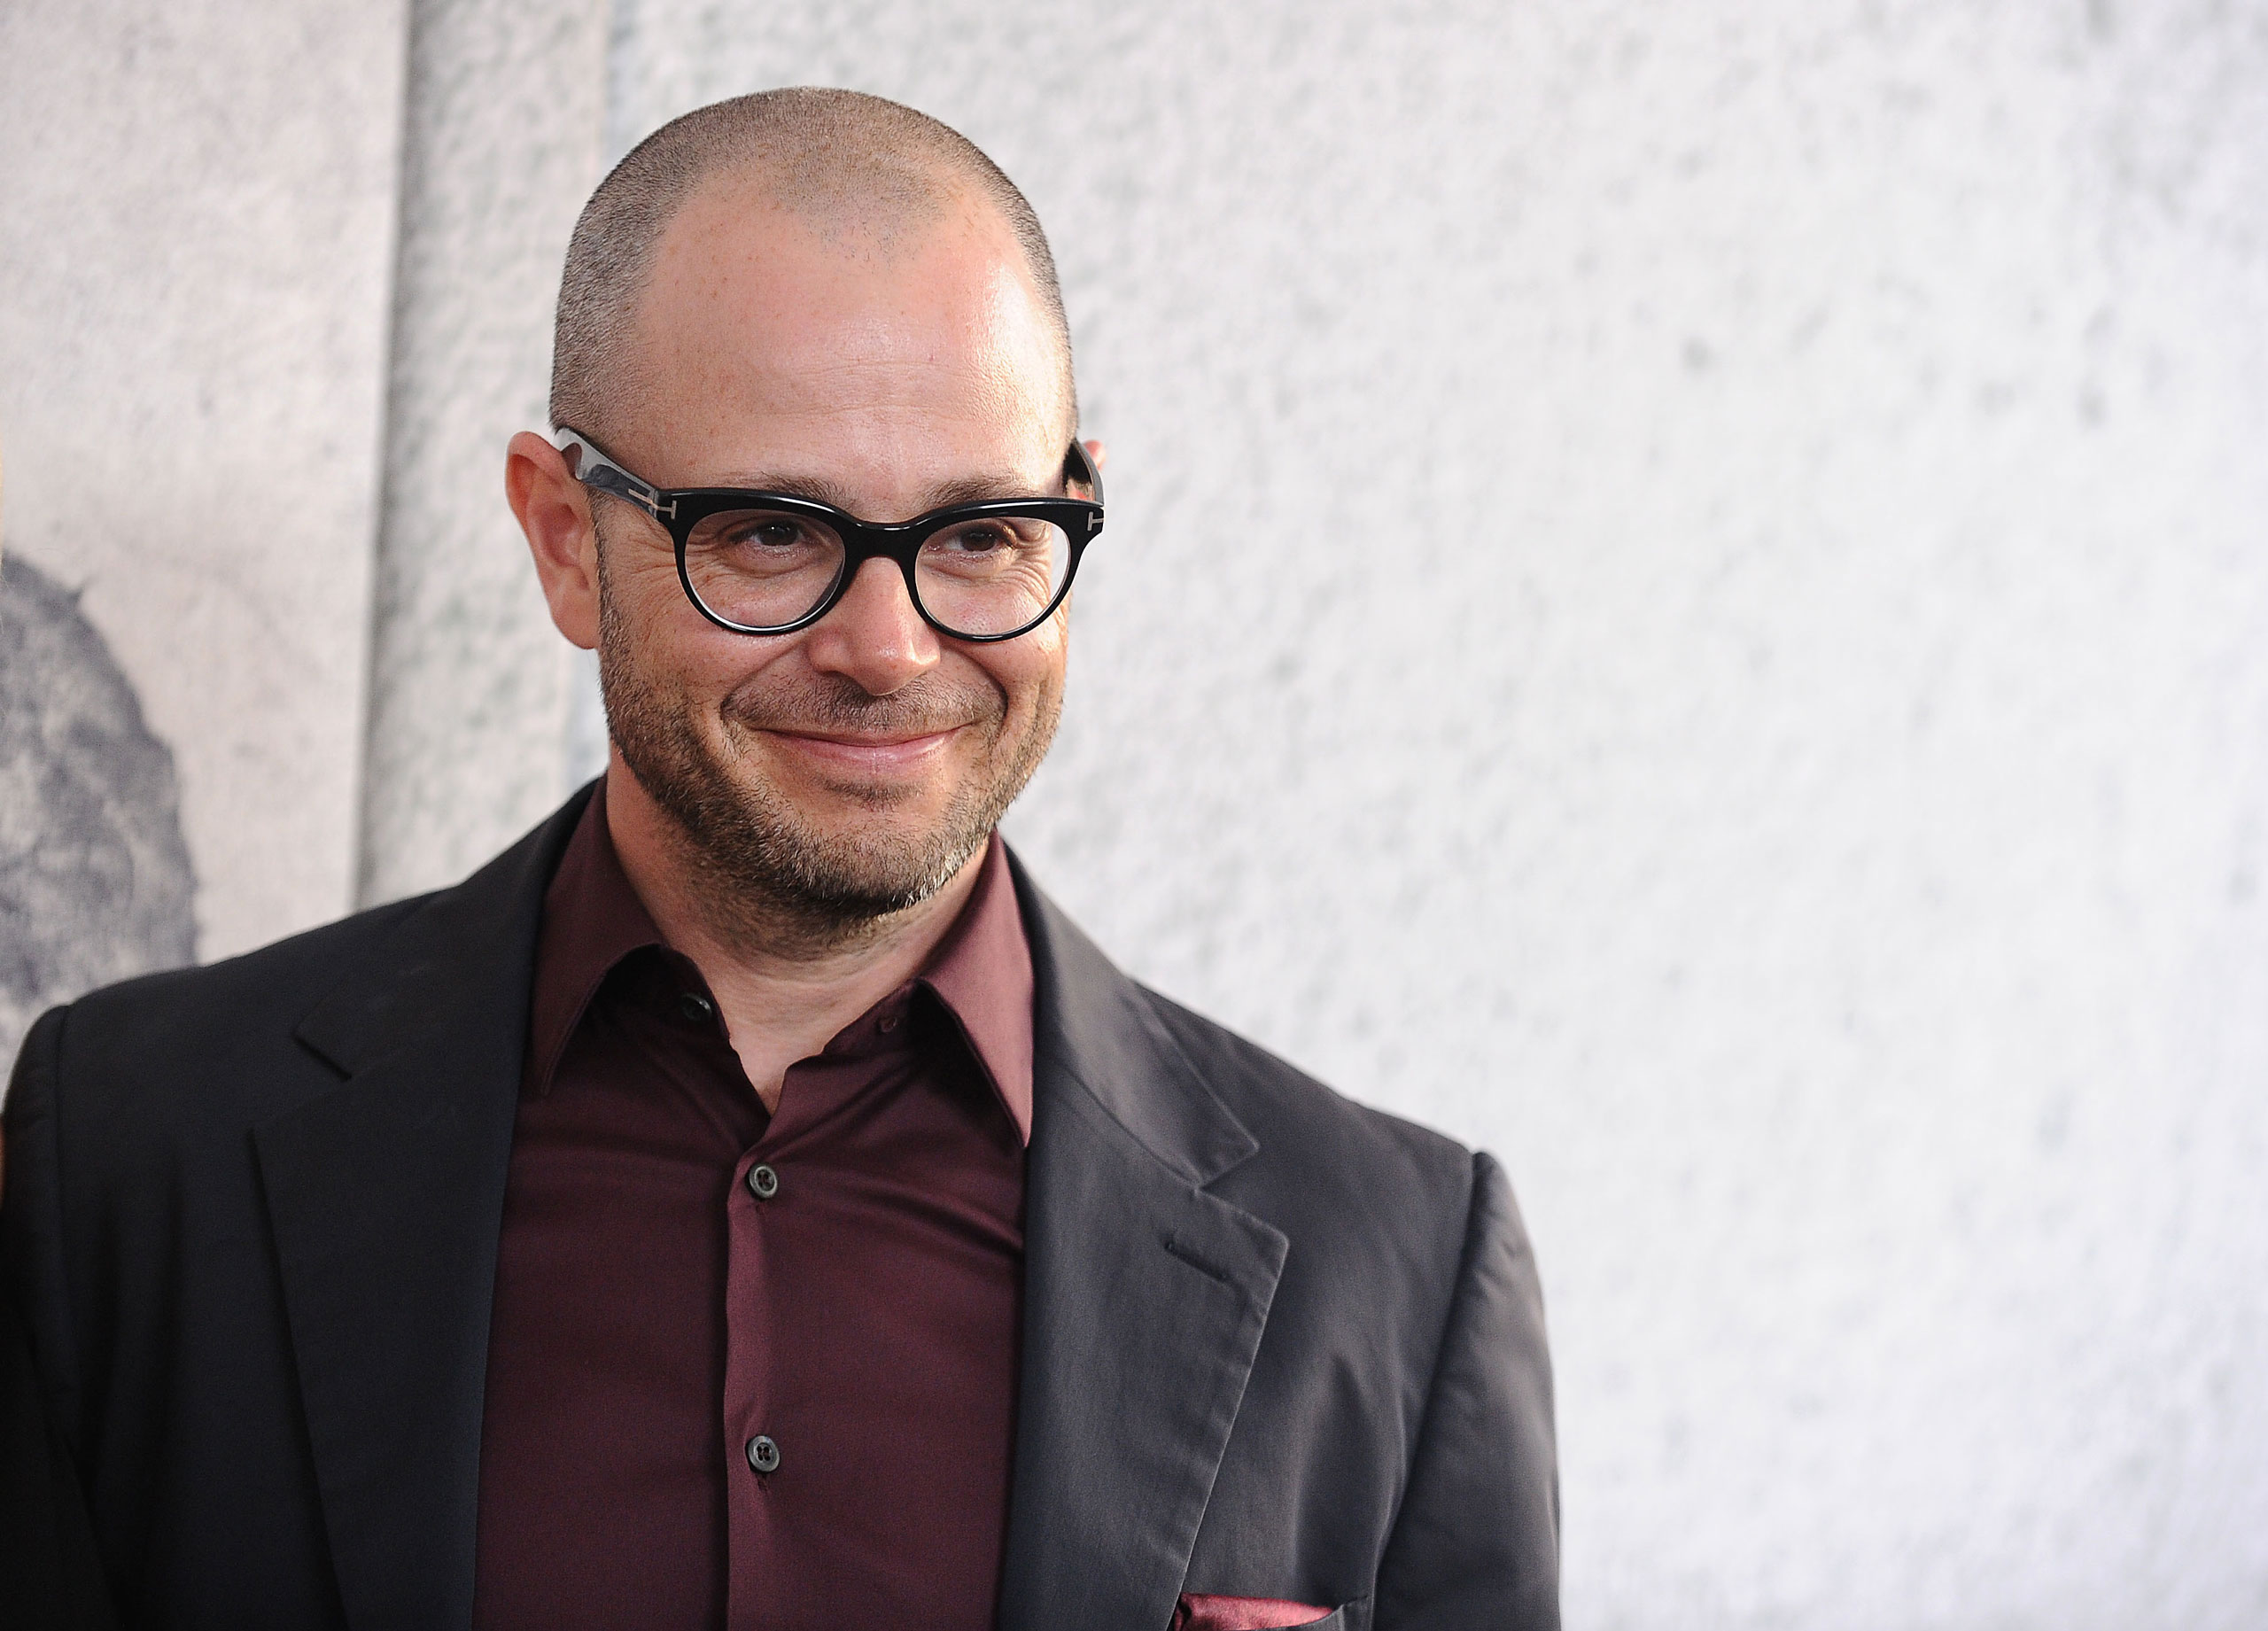 Producer Damon Lindelof attends the season 3 premiere of 'The Leftovers' at Avalon Hollywood on April 4, 2017 in Los Angeles.